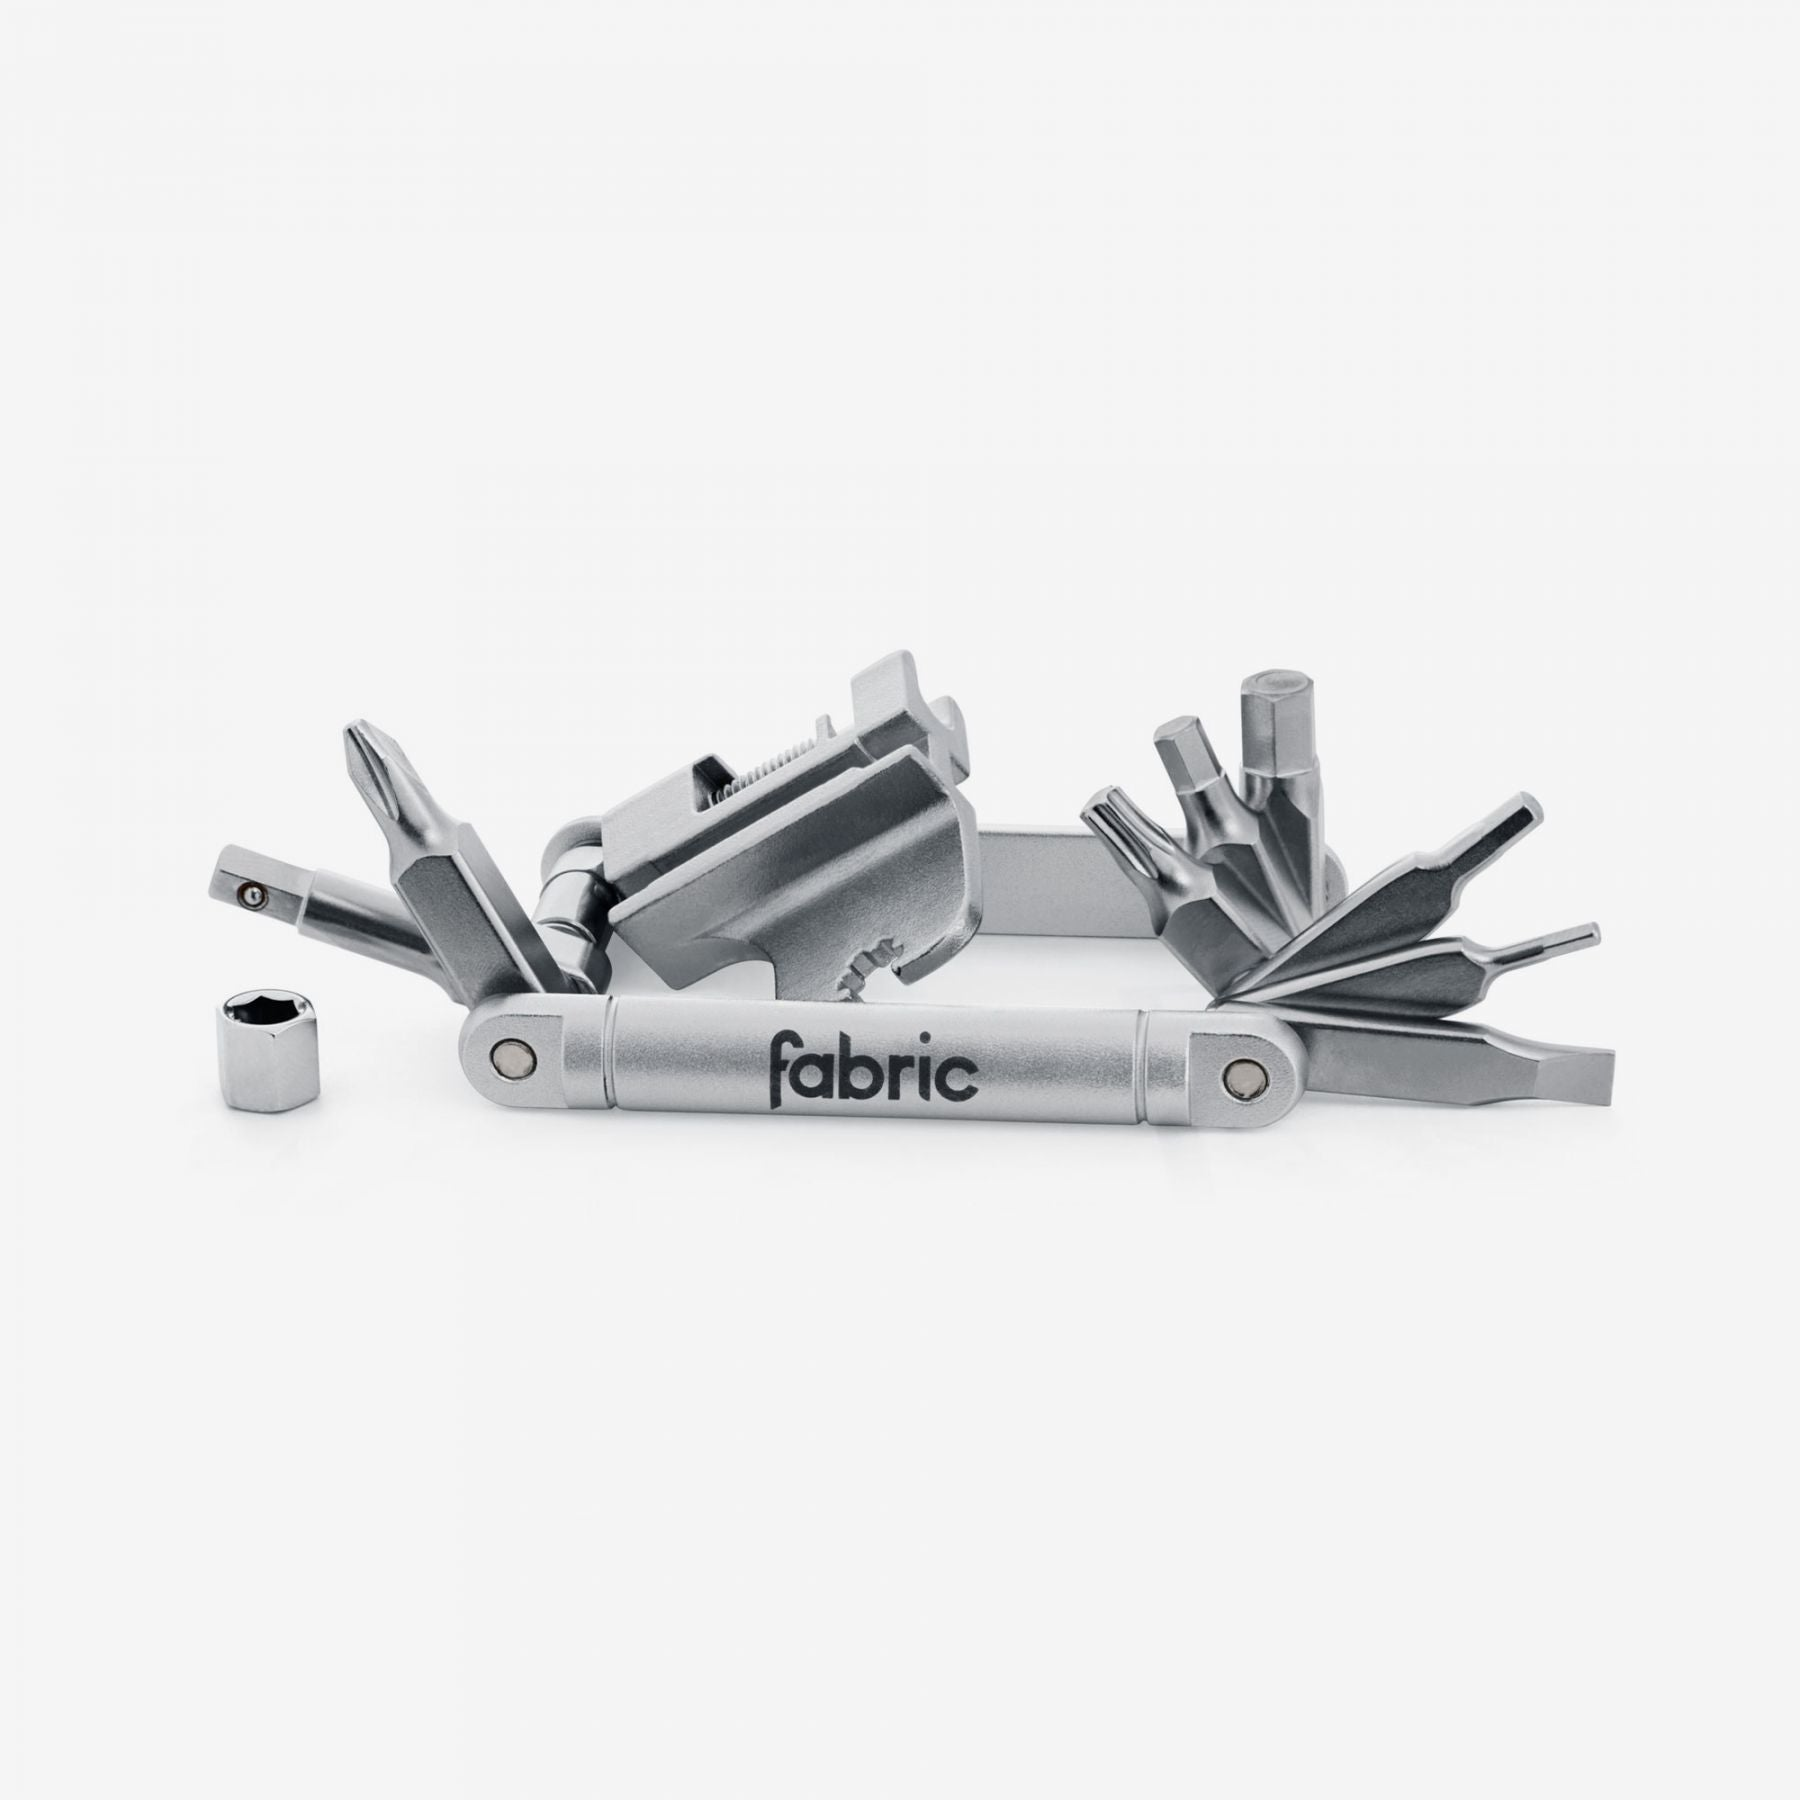 Fabric Essentials Bicycle 16 in 1 Mini Tool SLV Silver